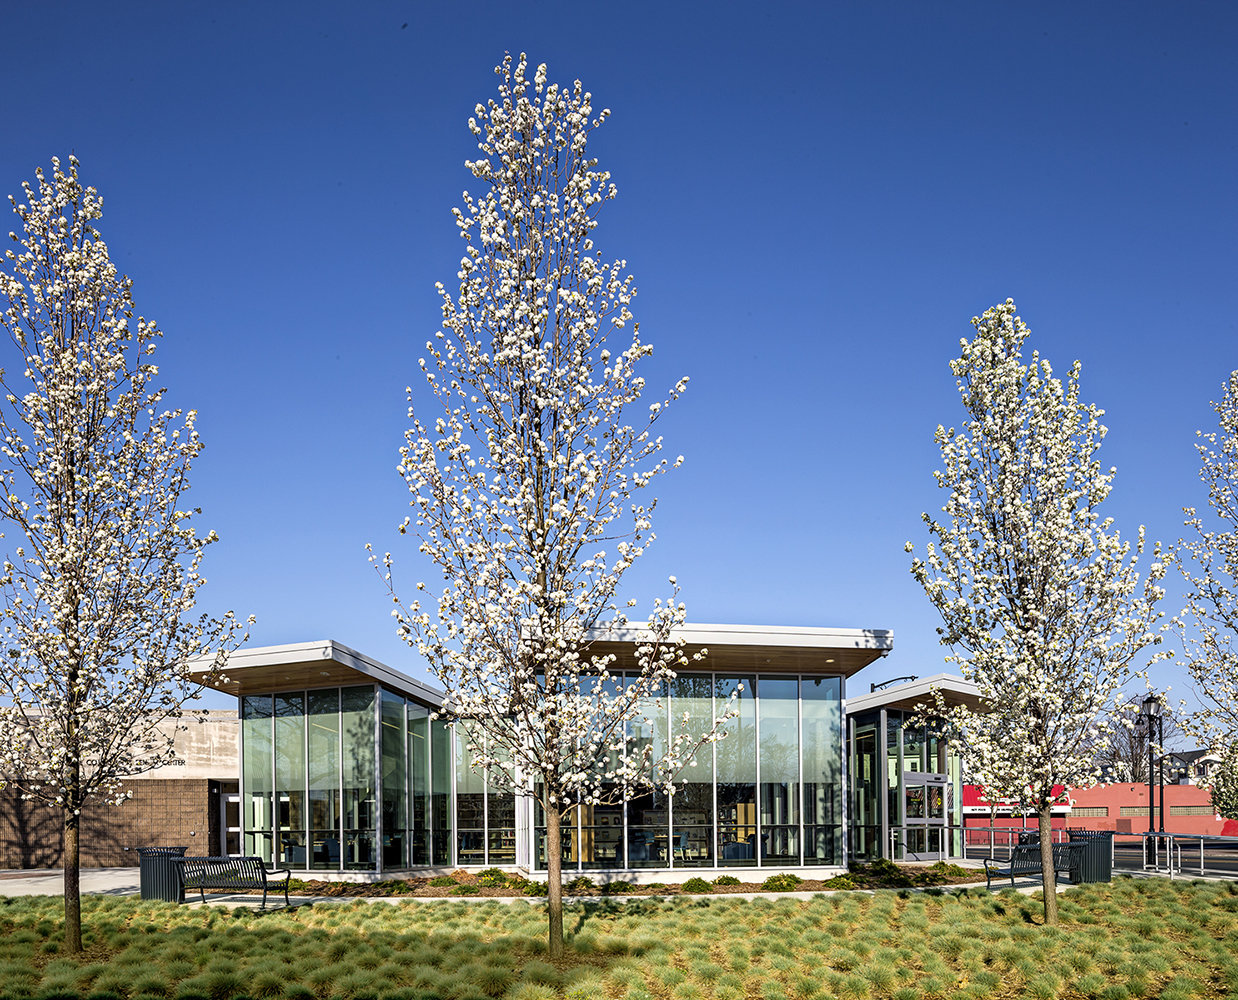 3 tskp hartford public library dwight parkville branch exterior trees bloom 1400 xxx q85